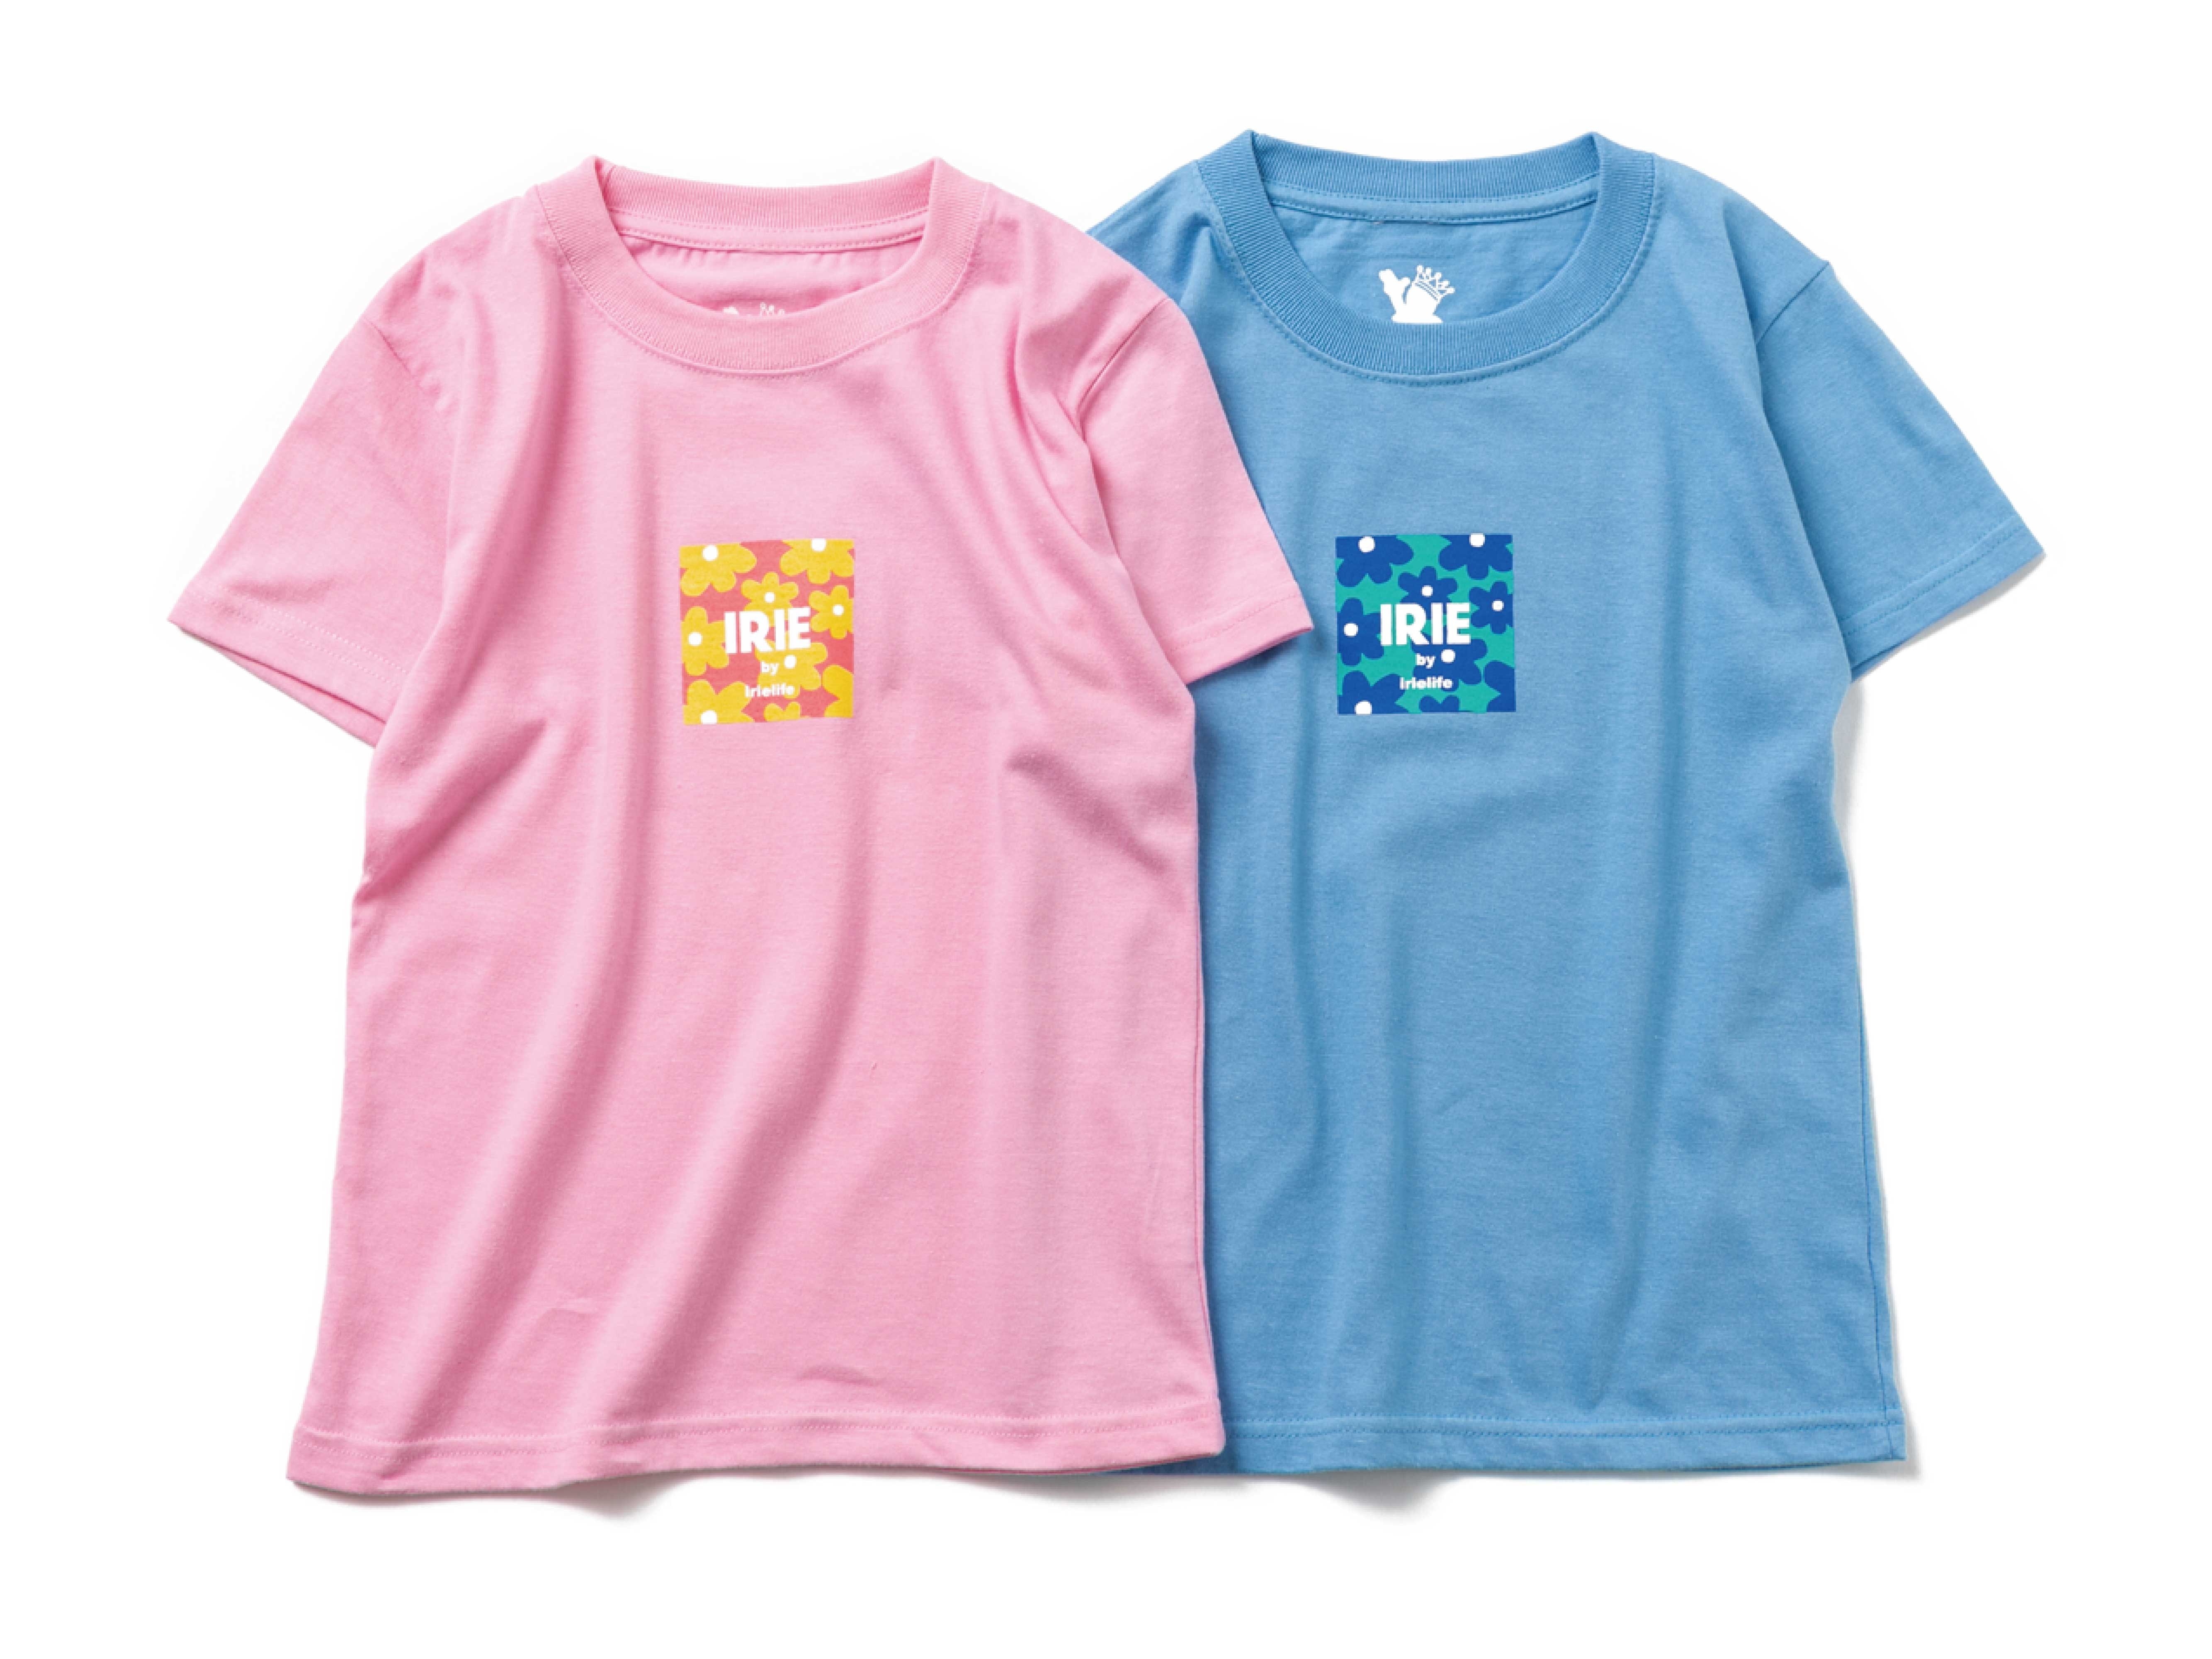 【20% OFF】IRIE FLOWER KIDS TEE - IRIE KIDS